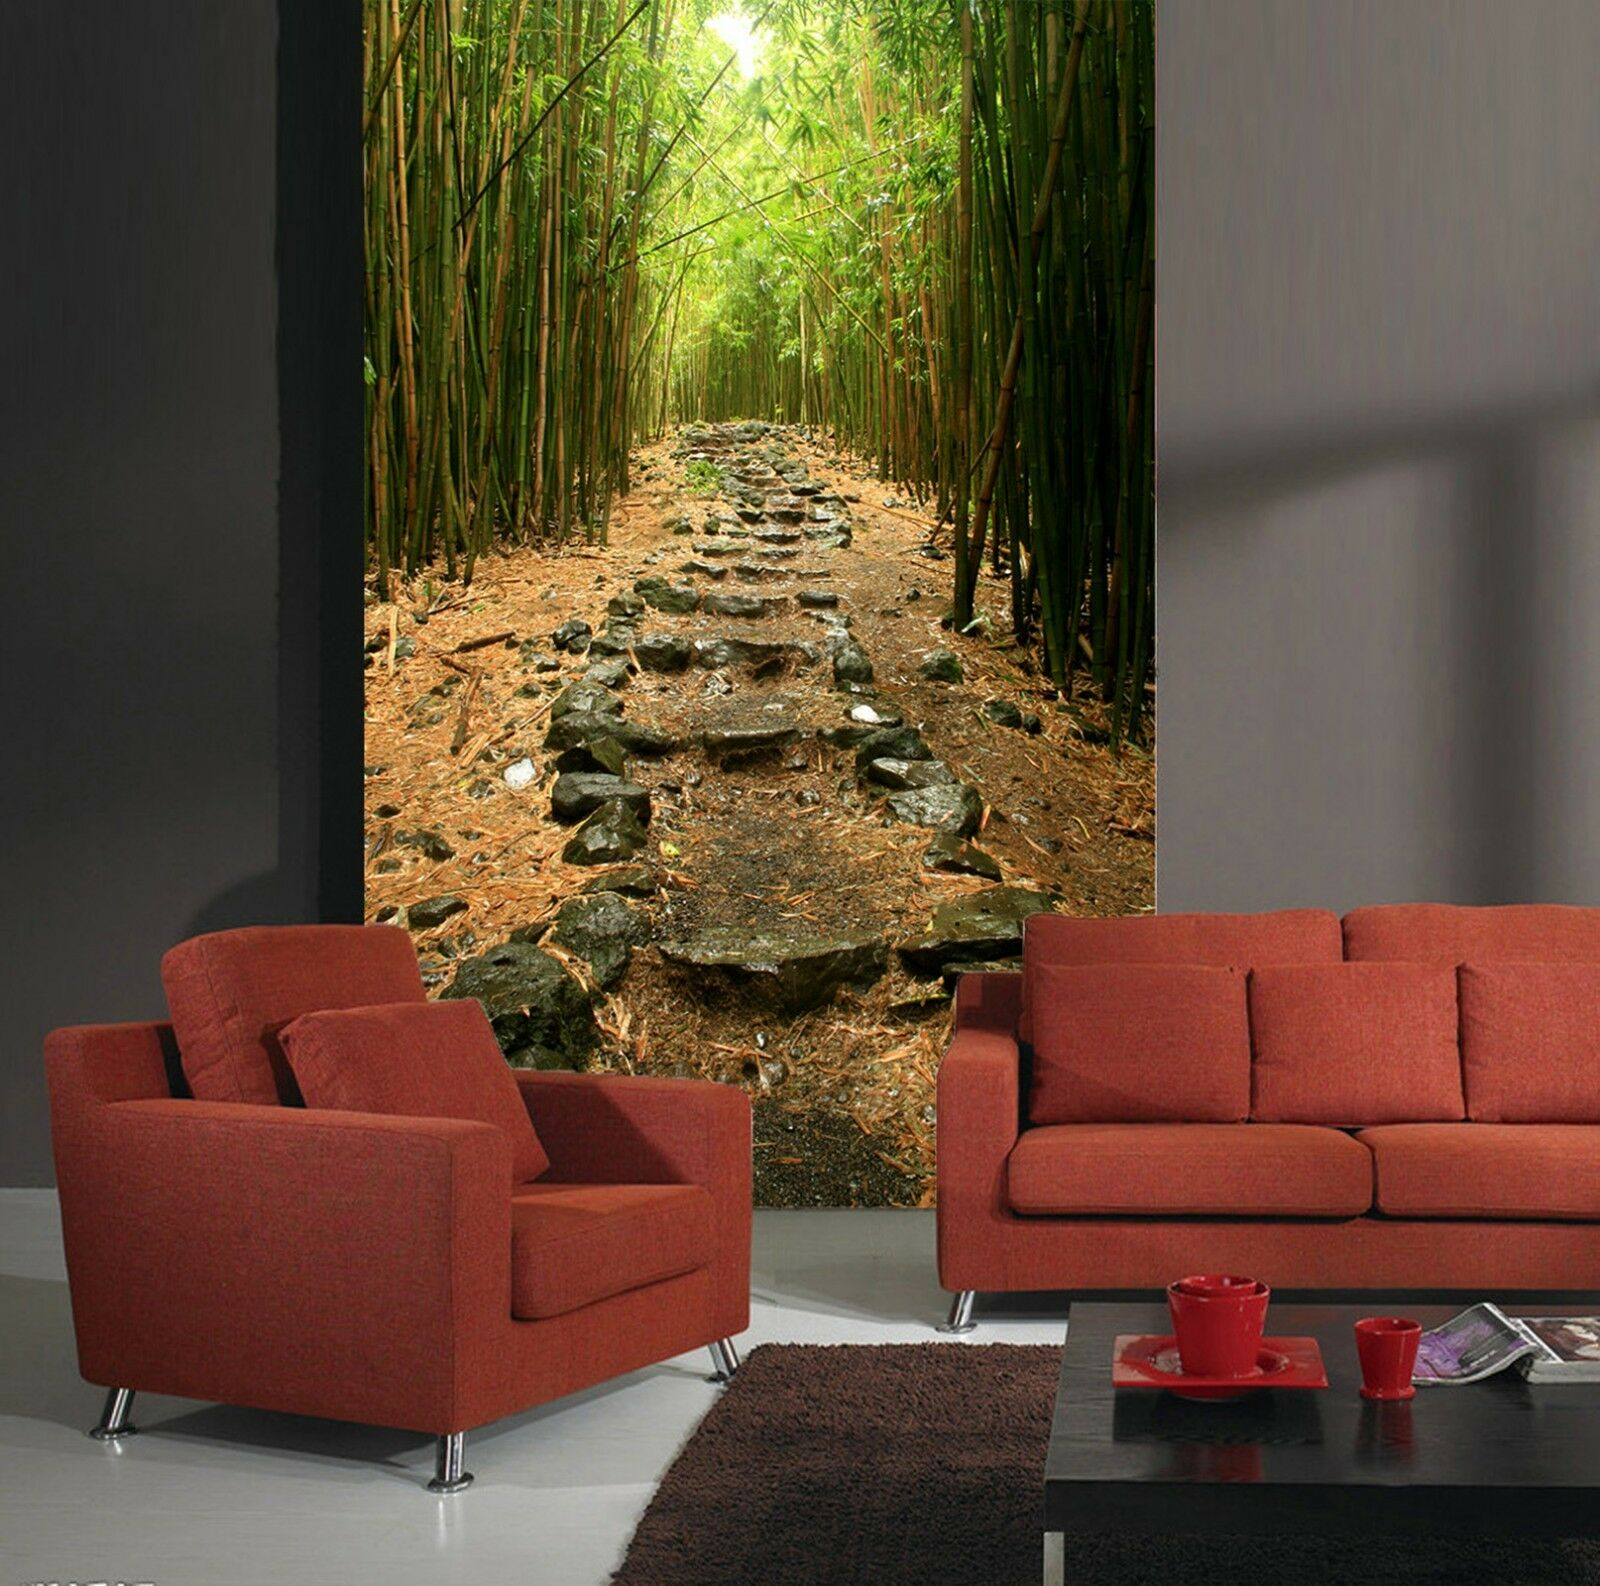 3D bamboo forest road Wall Paper wall Print Decal Wall Deco Indoor wall Mural